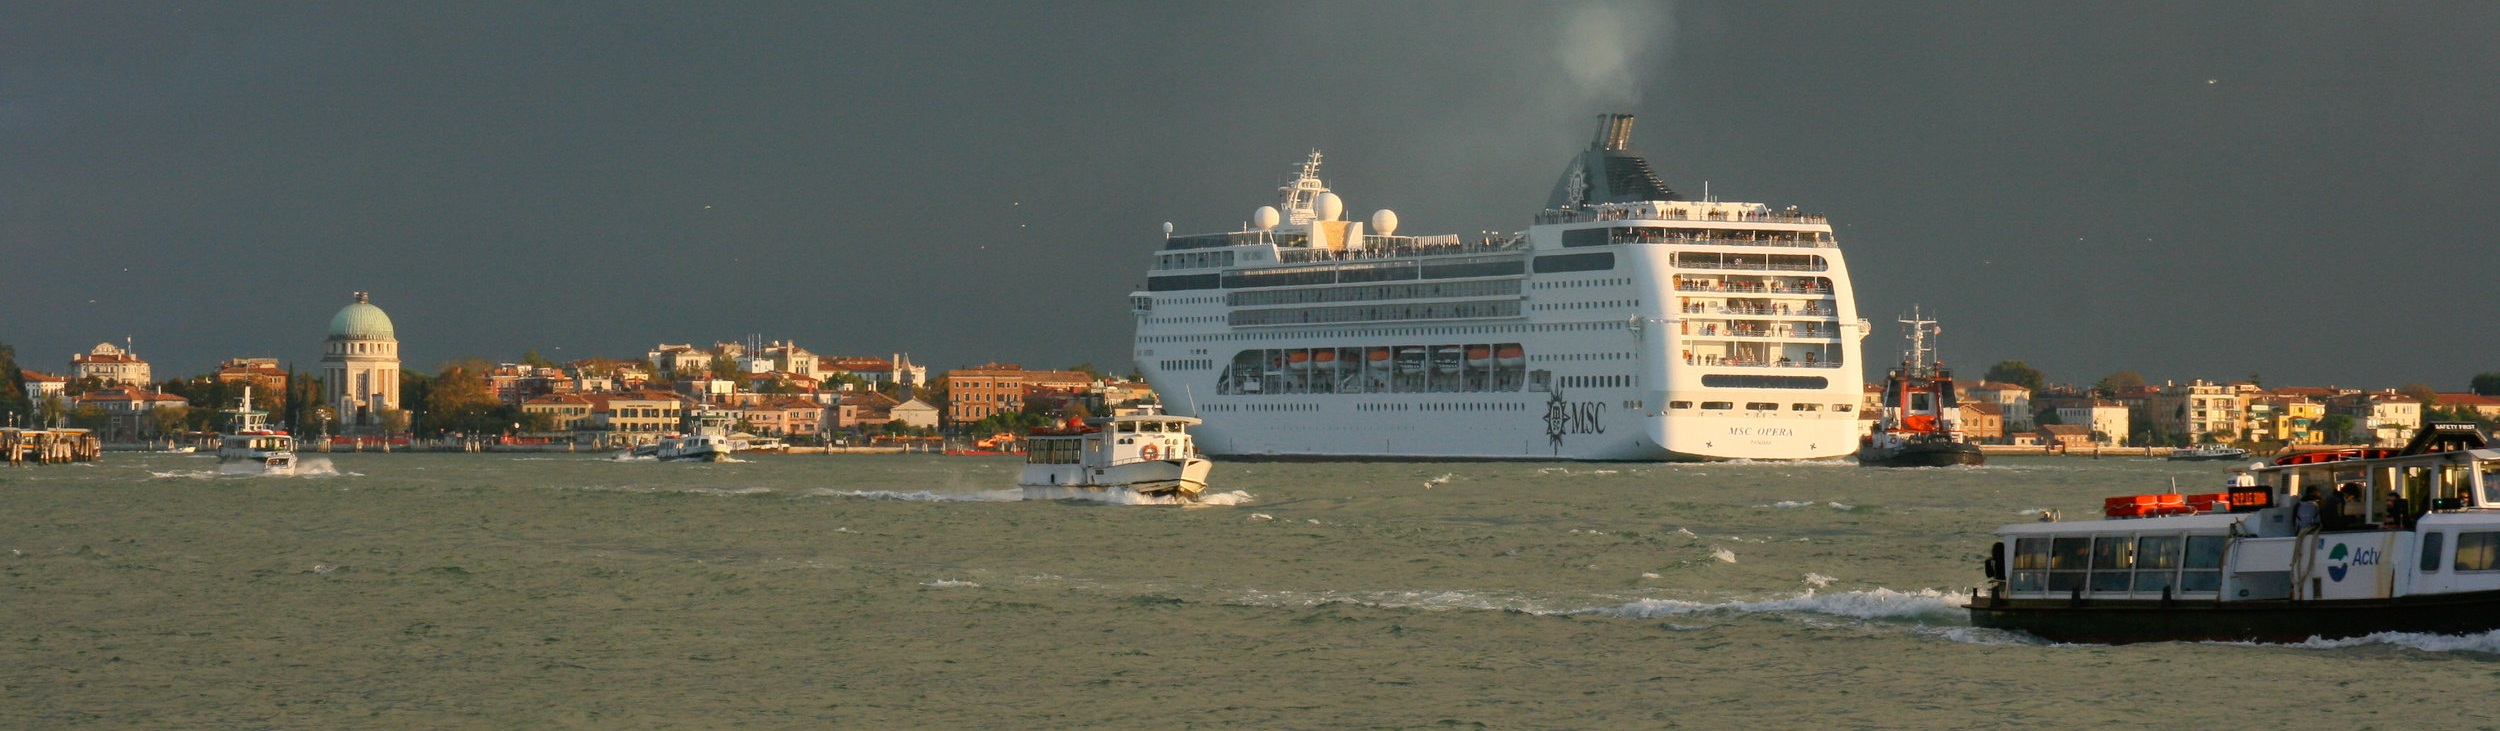 MSC Opera in Venice several years ago